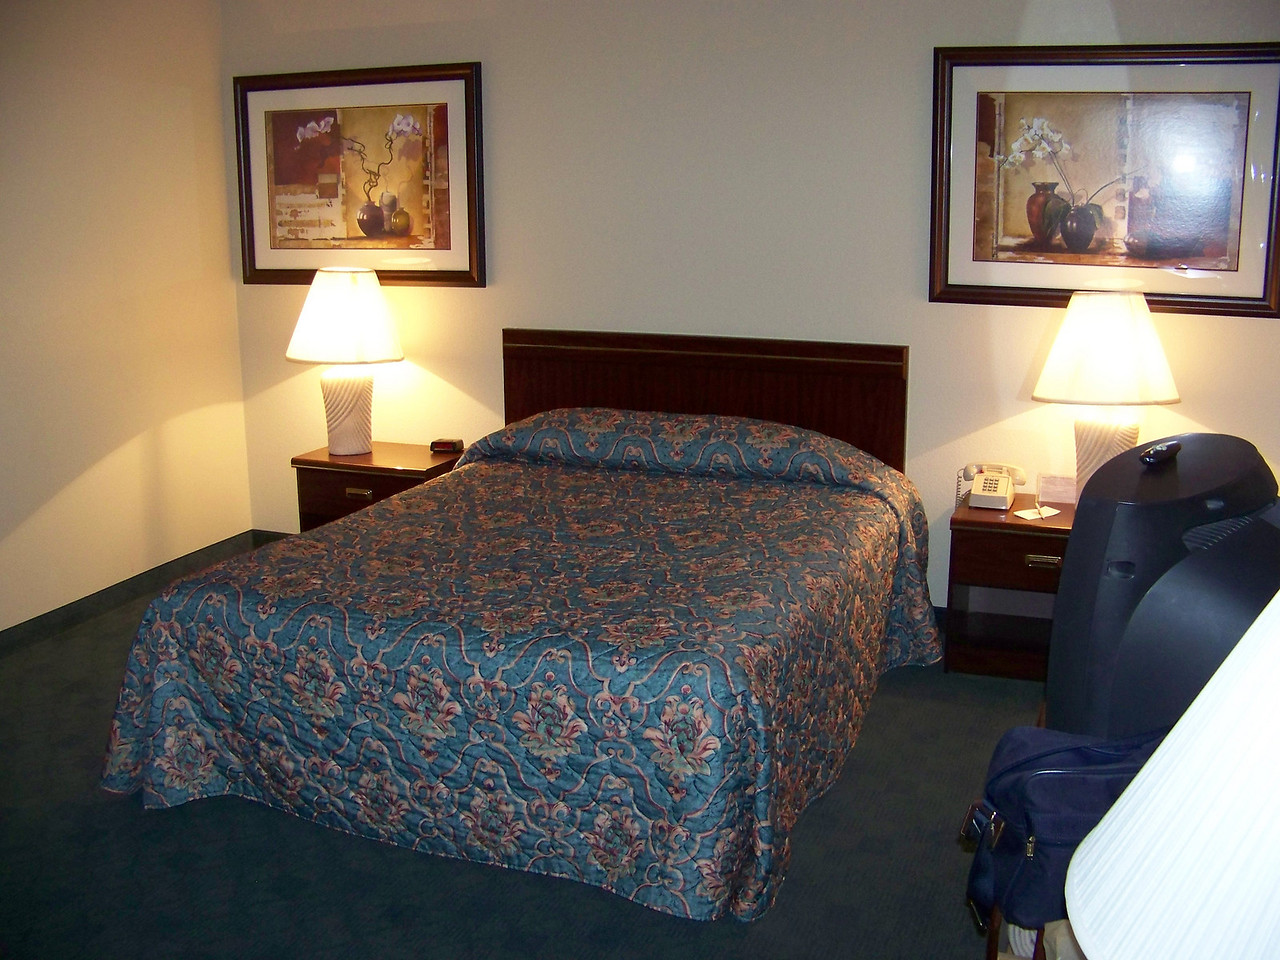 Dave stayed in this bedroom.<br /> [On the road to Reno - Best Western Miner's Inn in Yreka, CA]